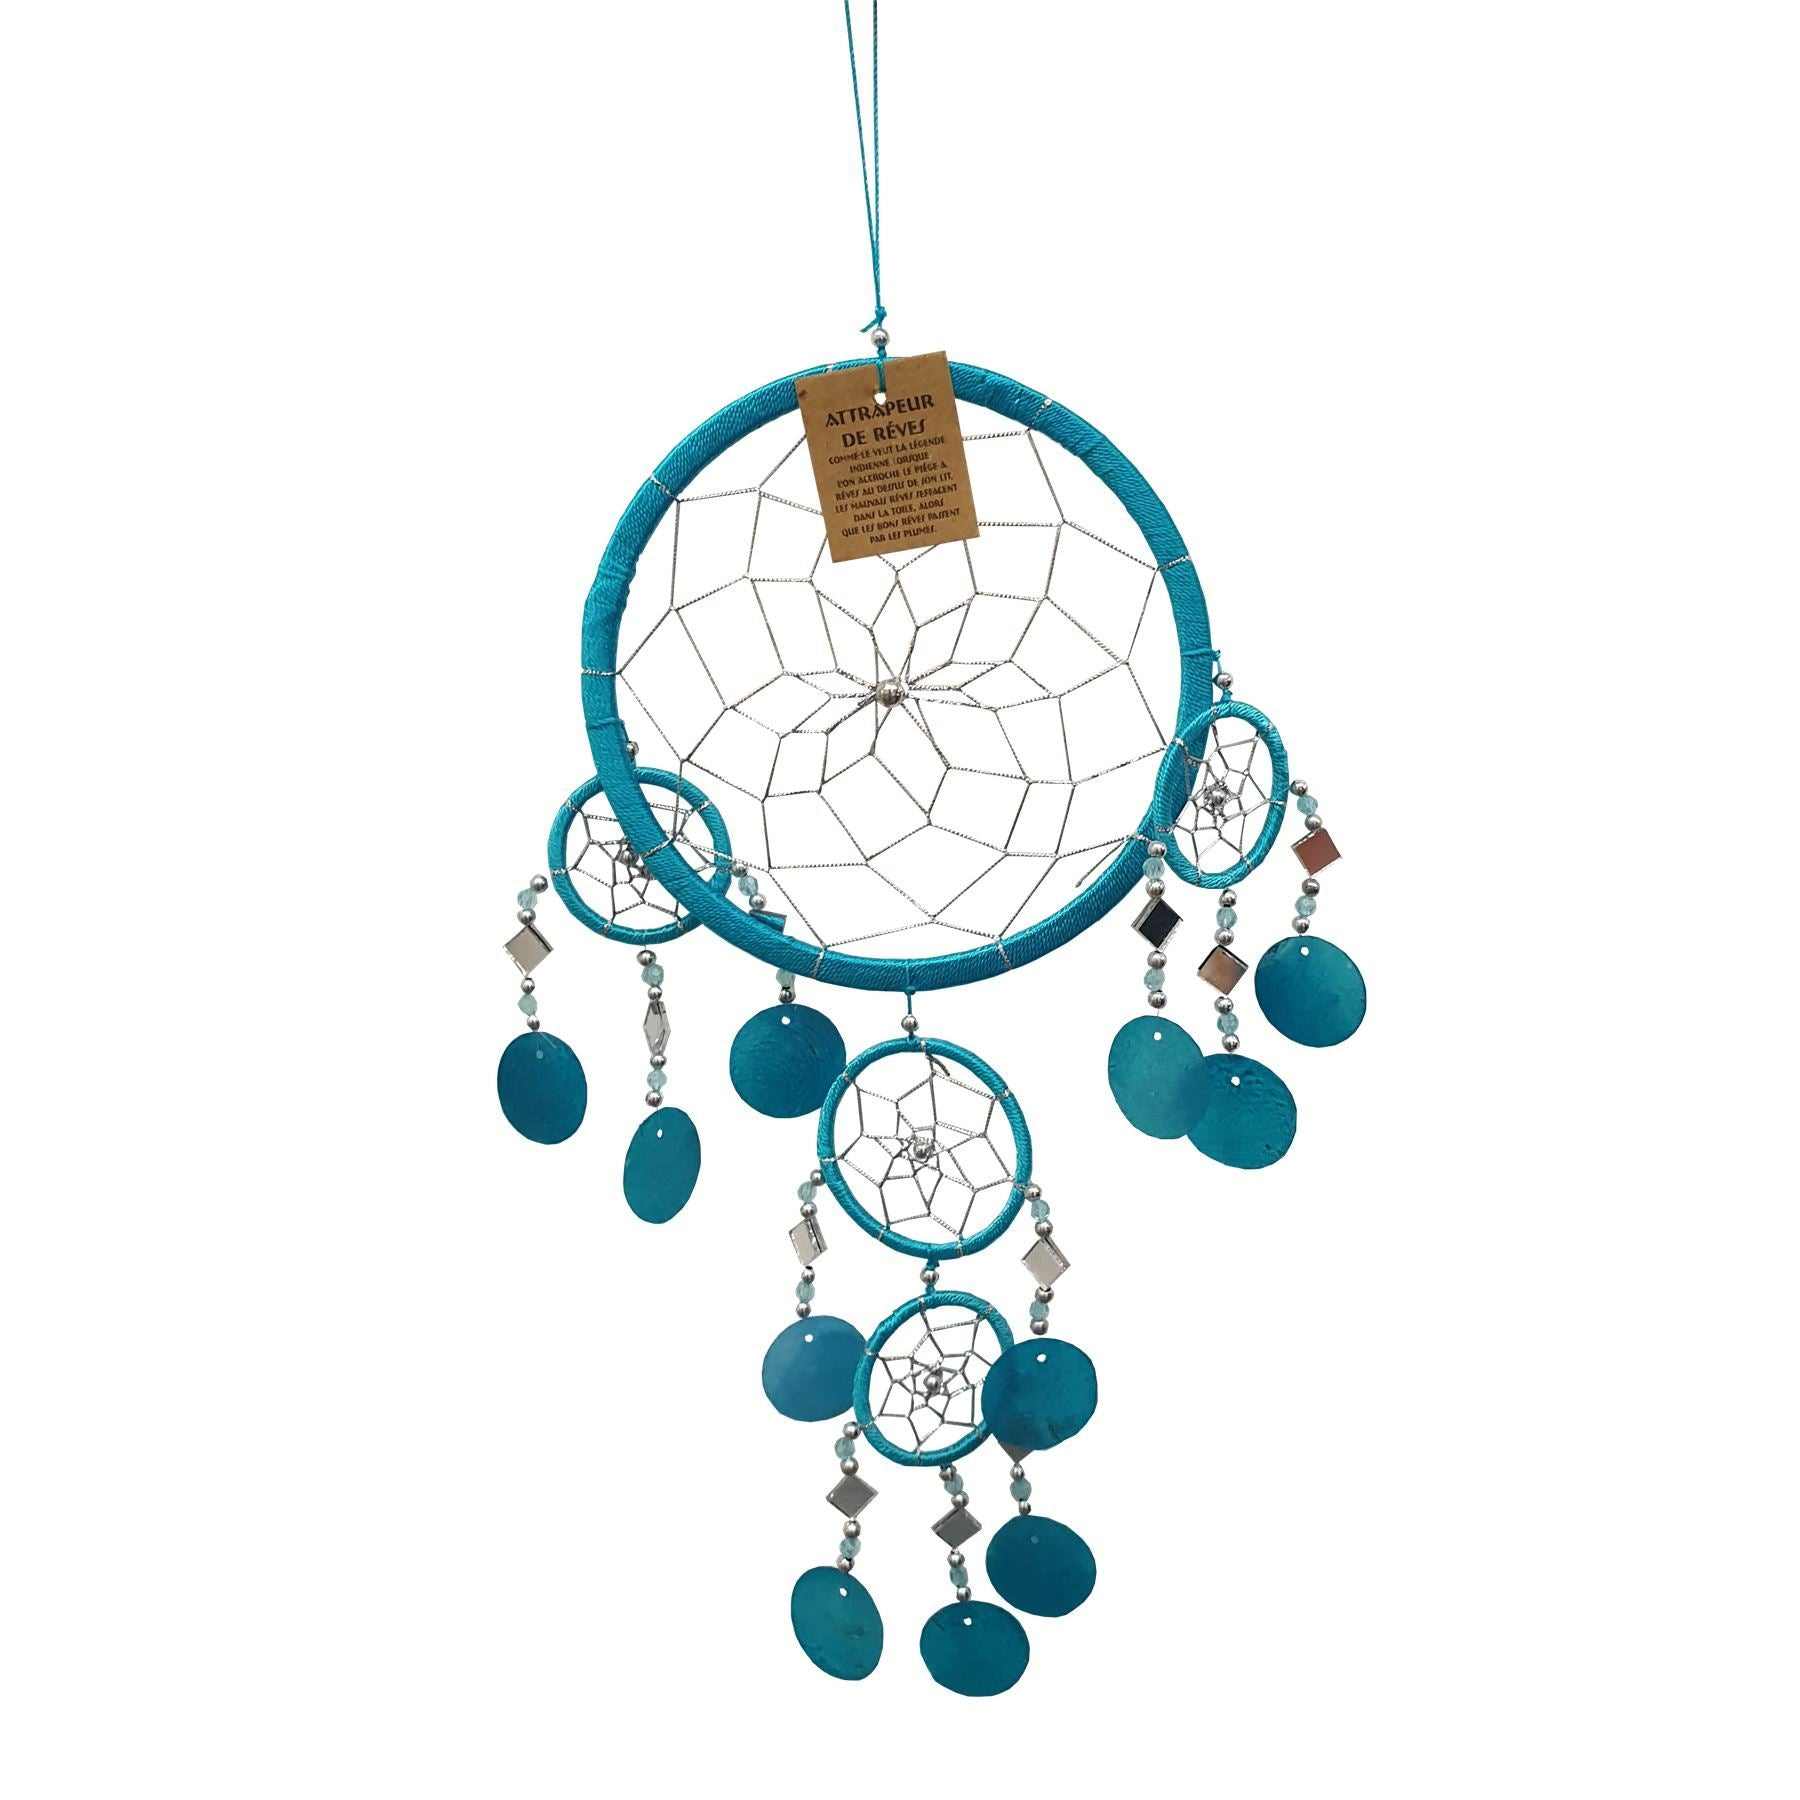 Vie Naturals Capiz Dream Catcher, No Feathers, 16cm, Turquoise by  Global 1st